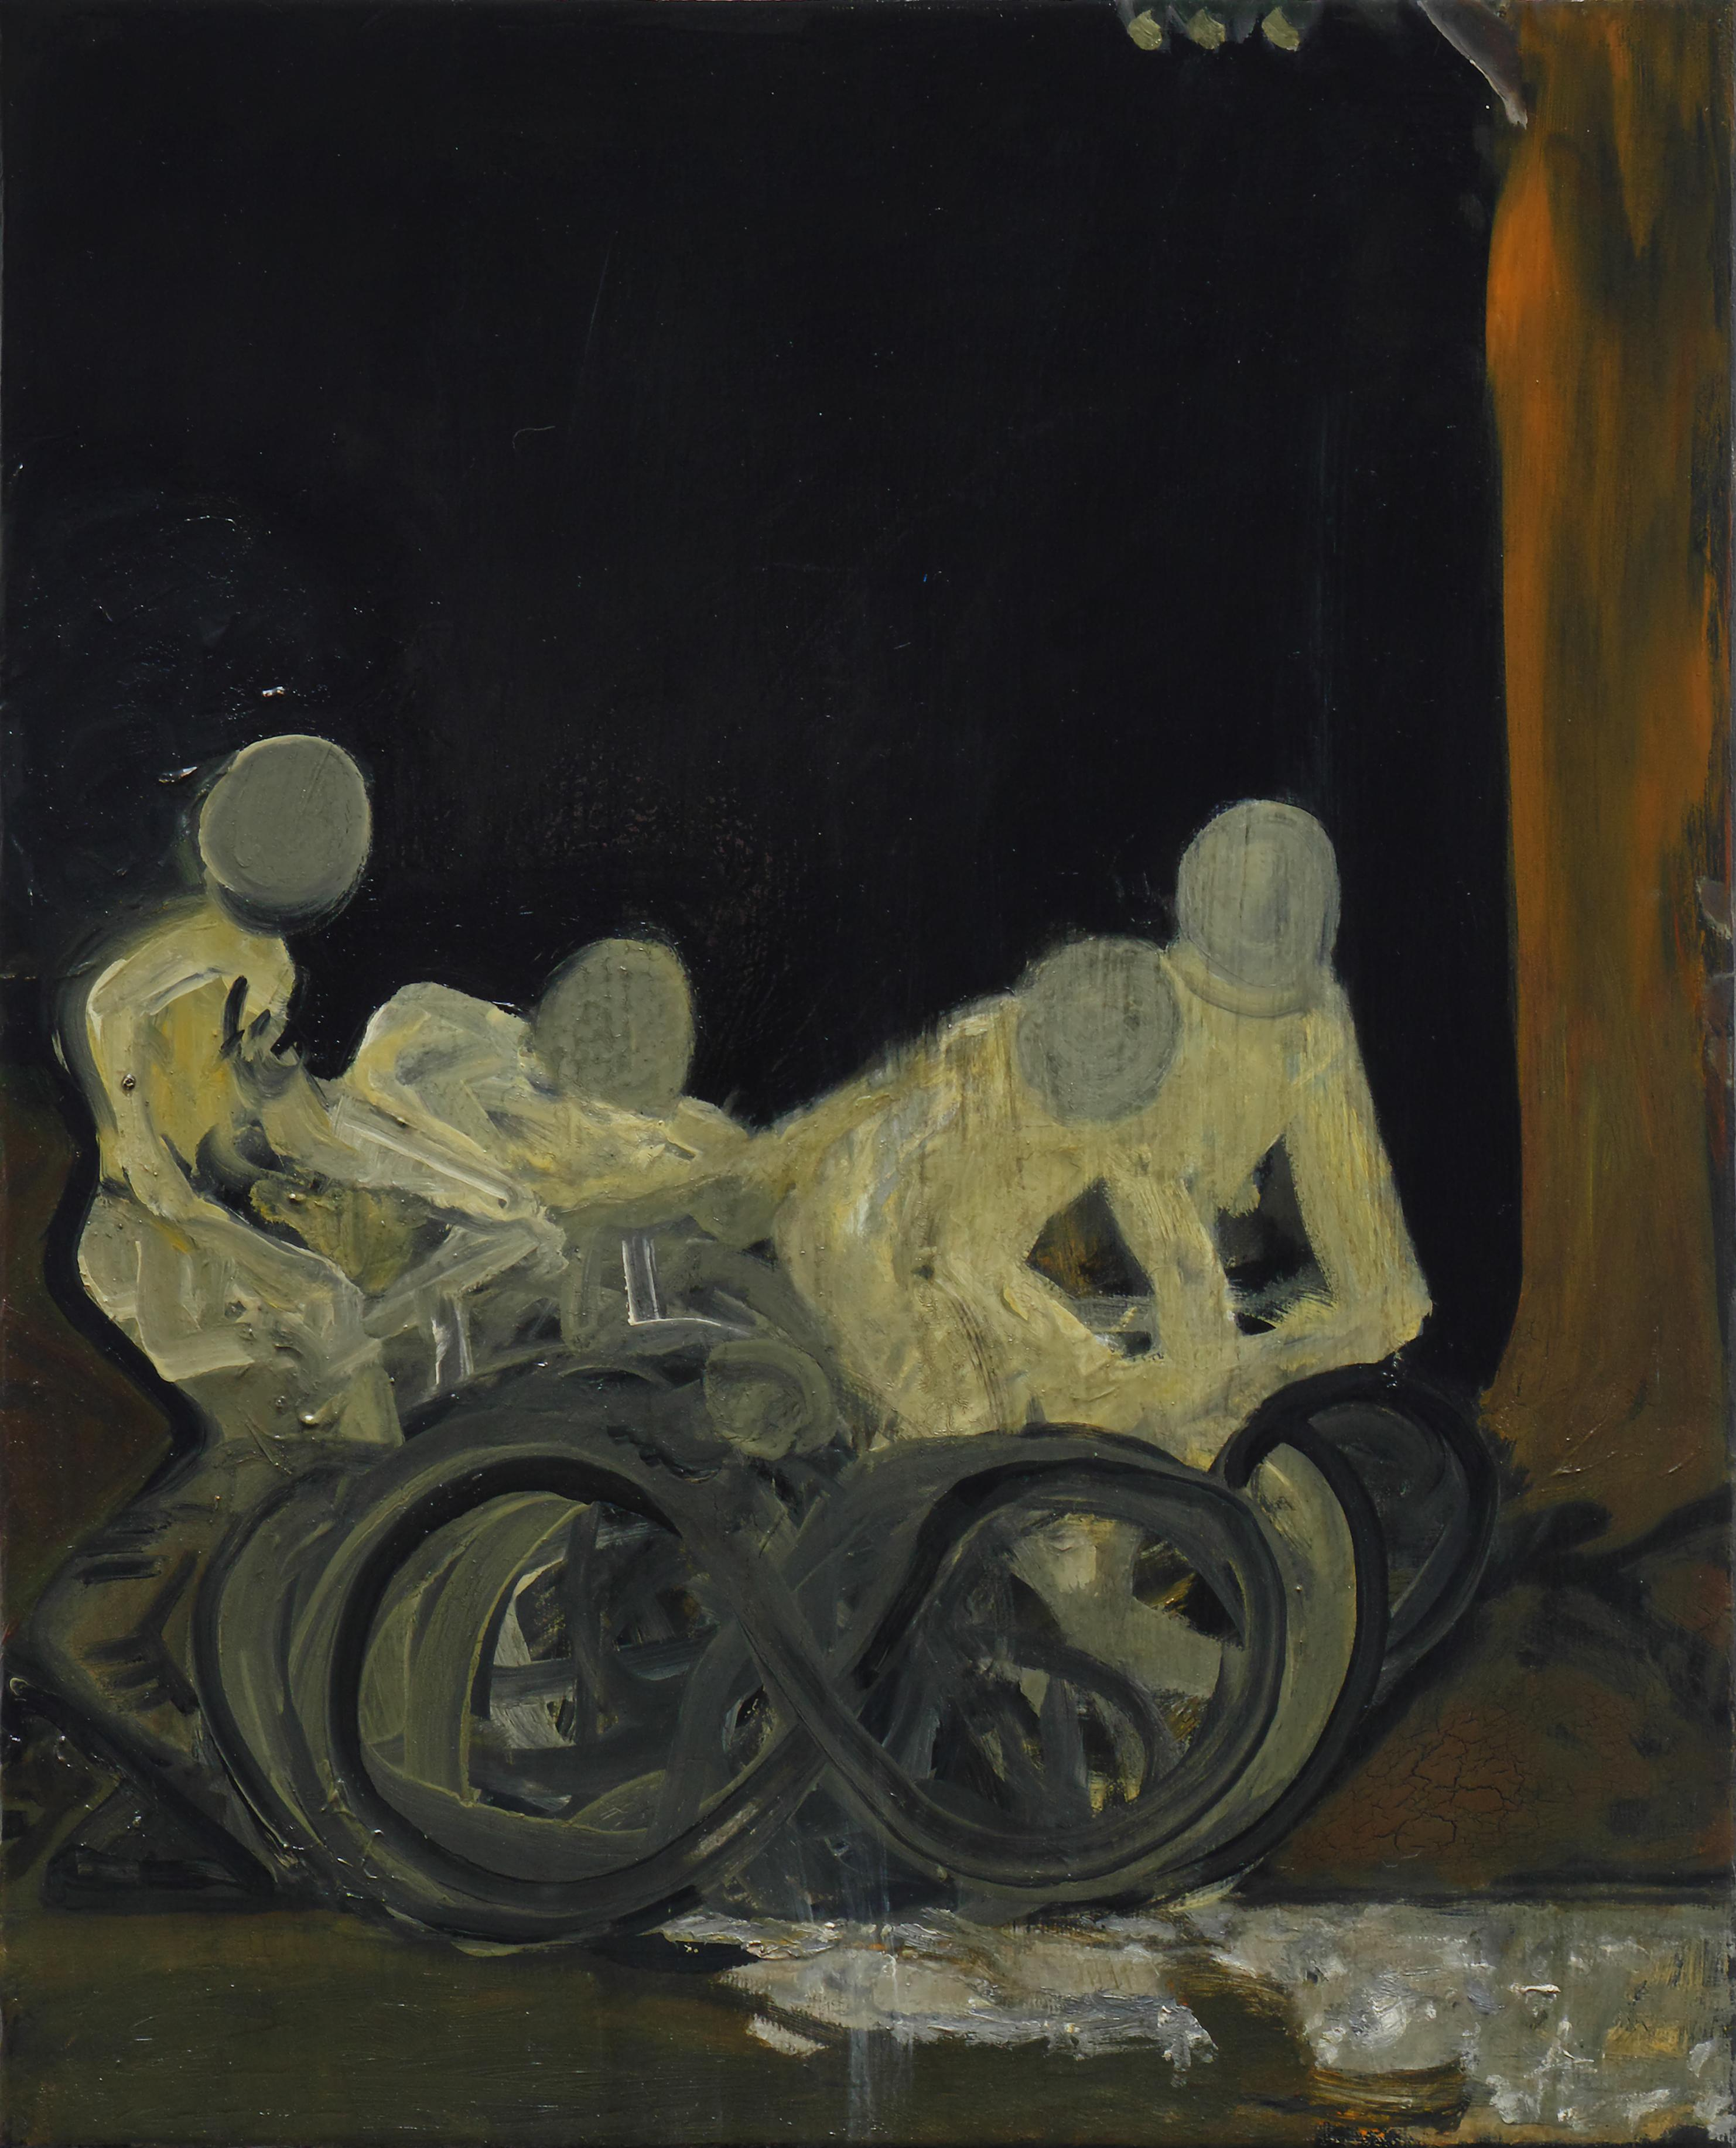 Bike Stories - Contemporary Figurative Oil Painting, Existentialism Art